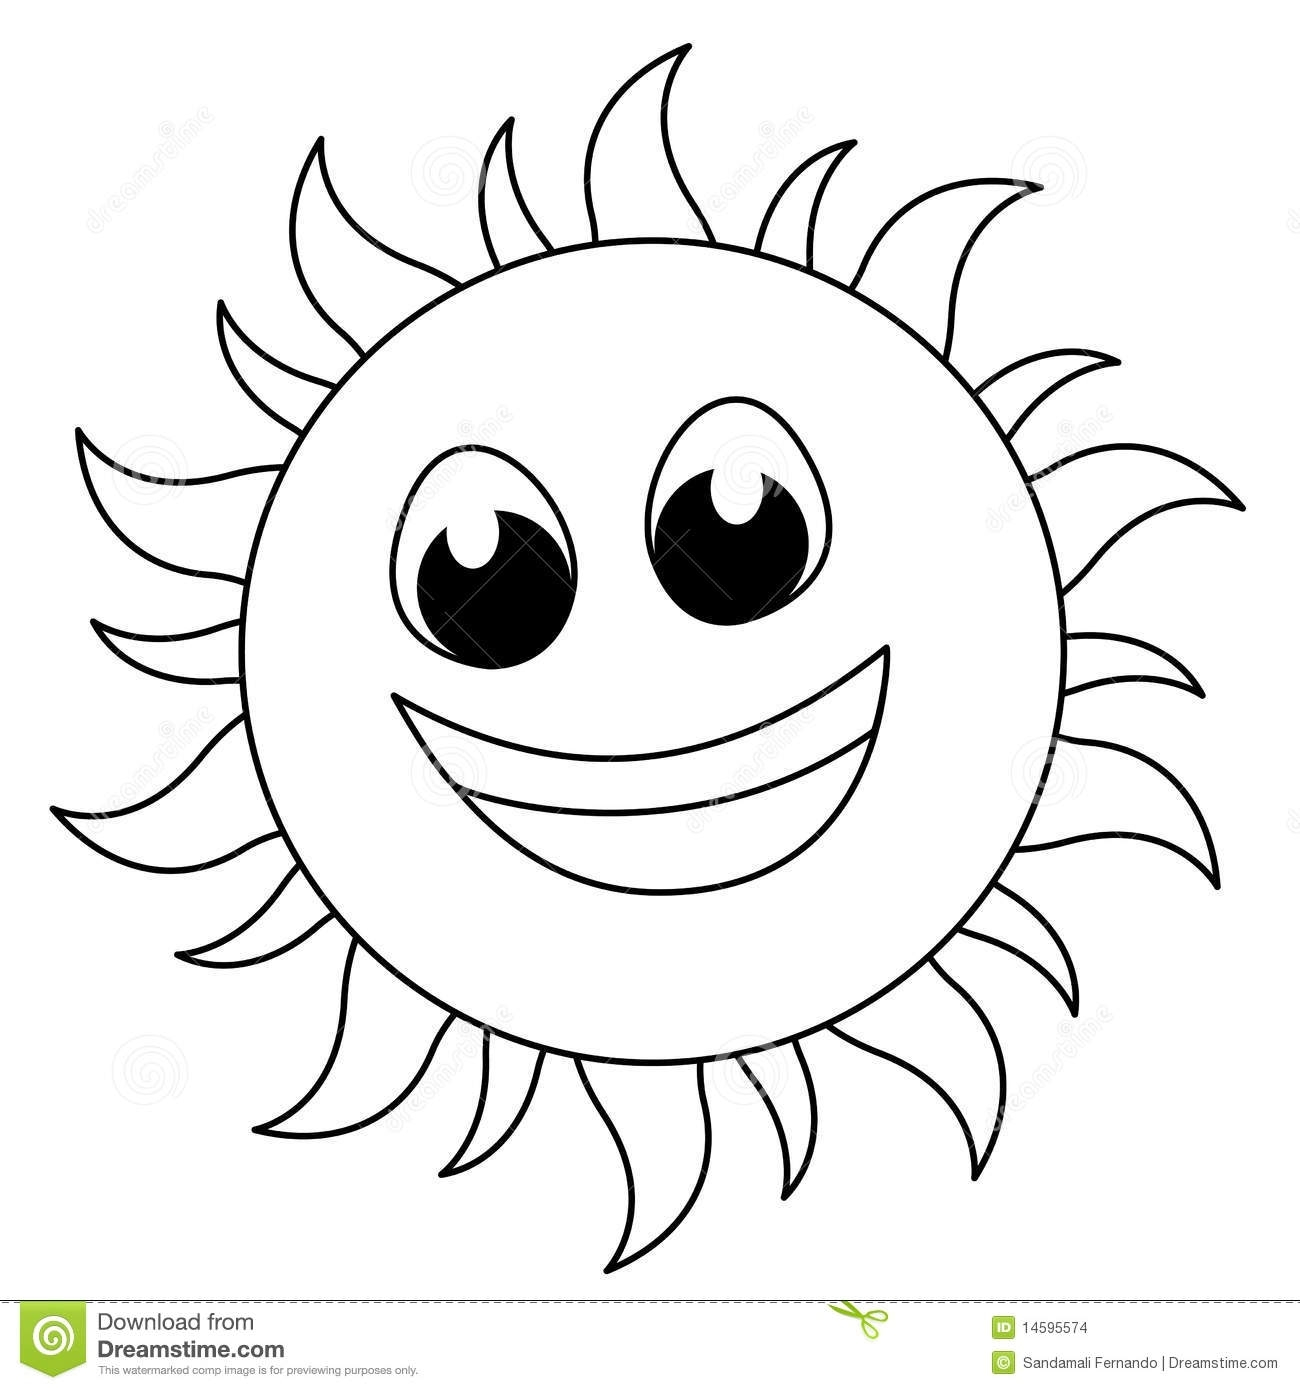 Smiling Sun Clipart Black And White.